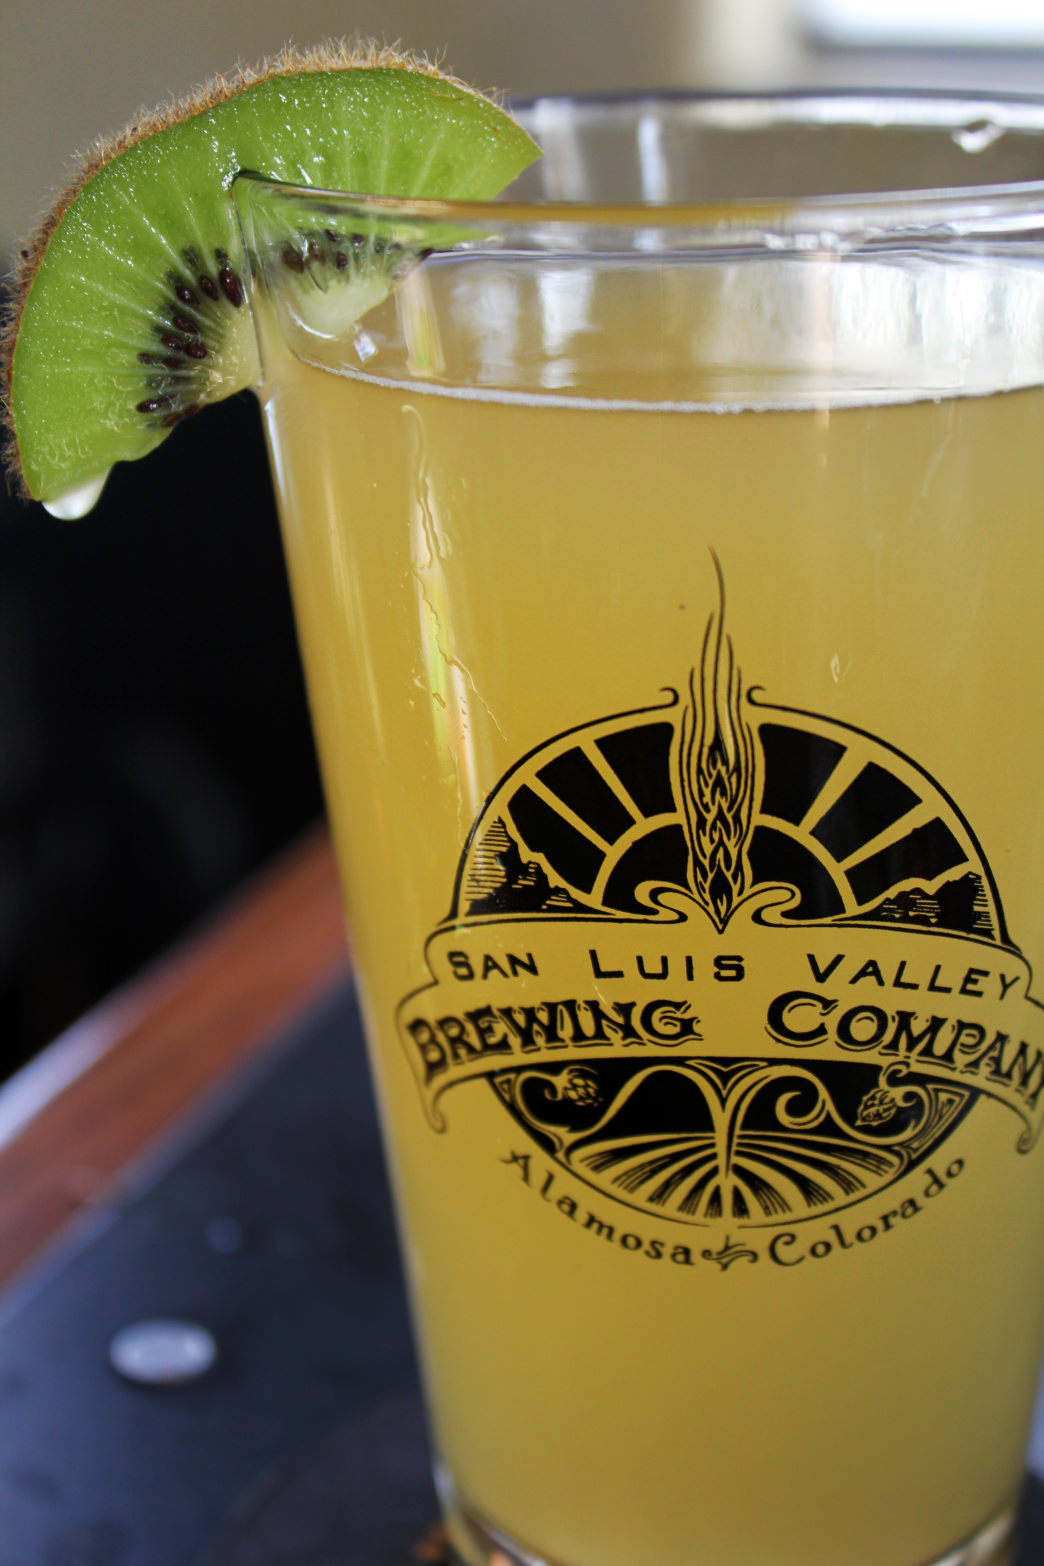 Try the kiwi beer at San Luis Valley Brewing Company.